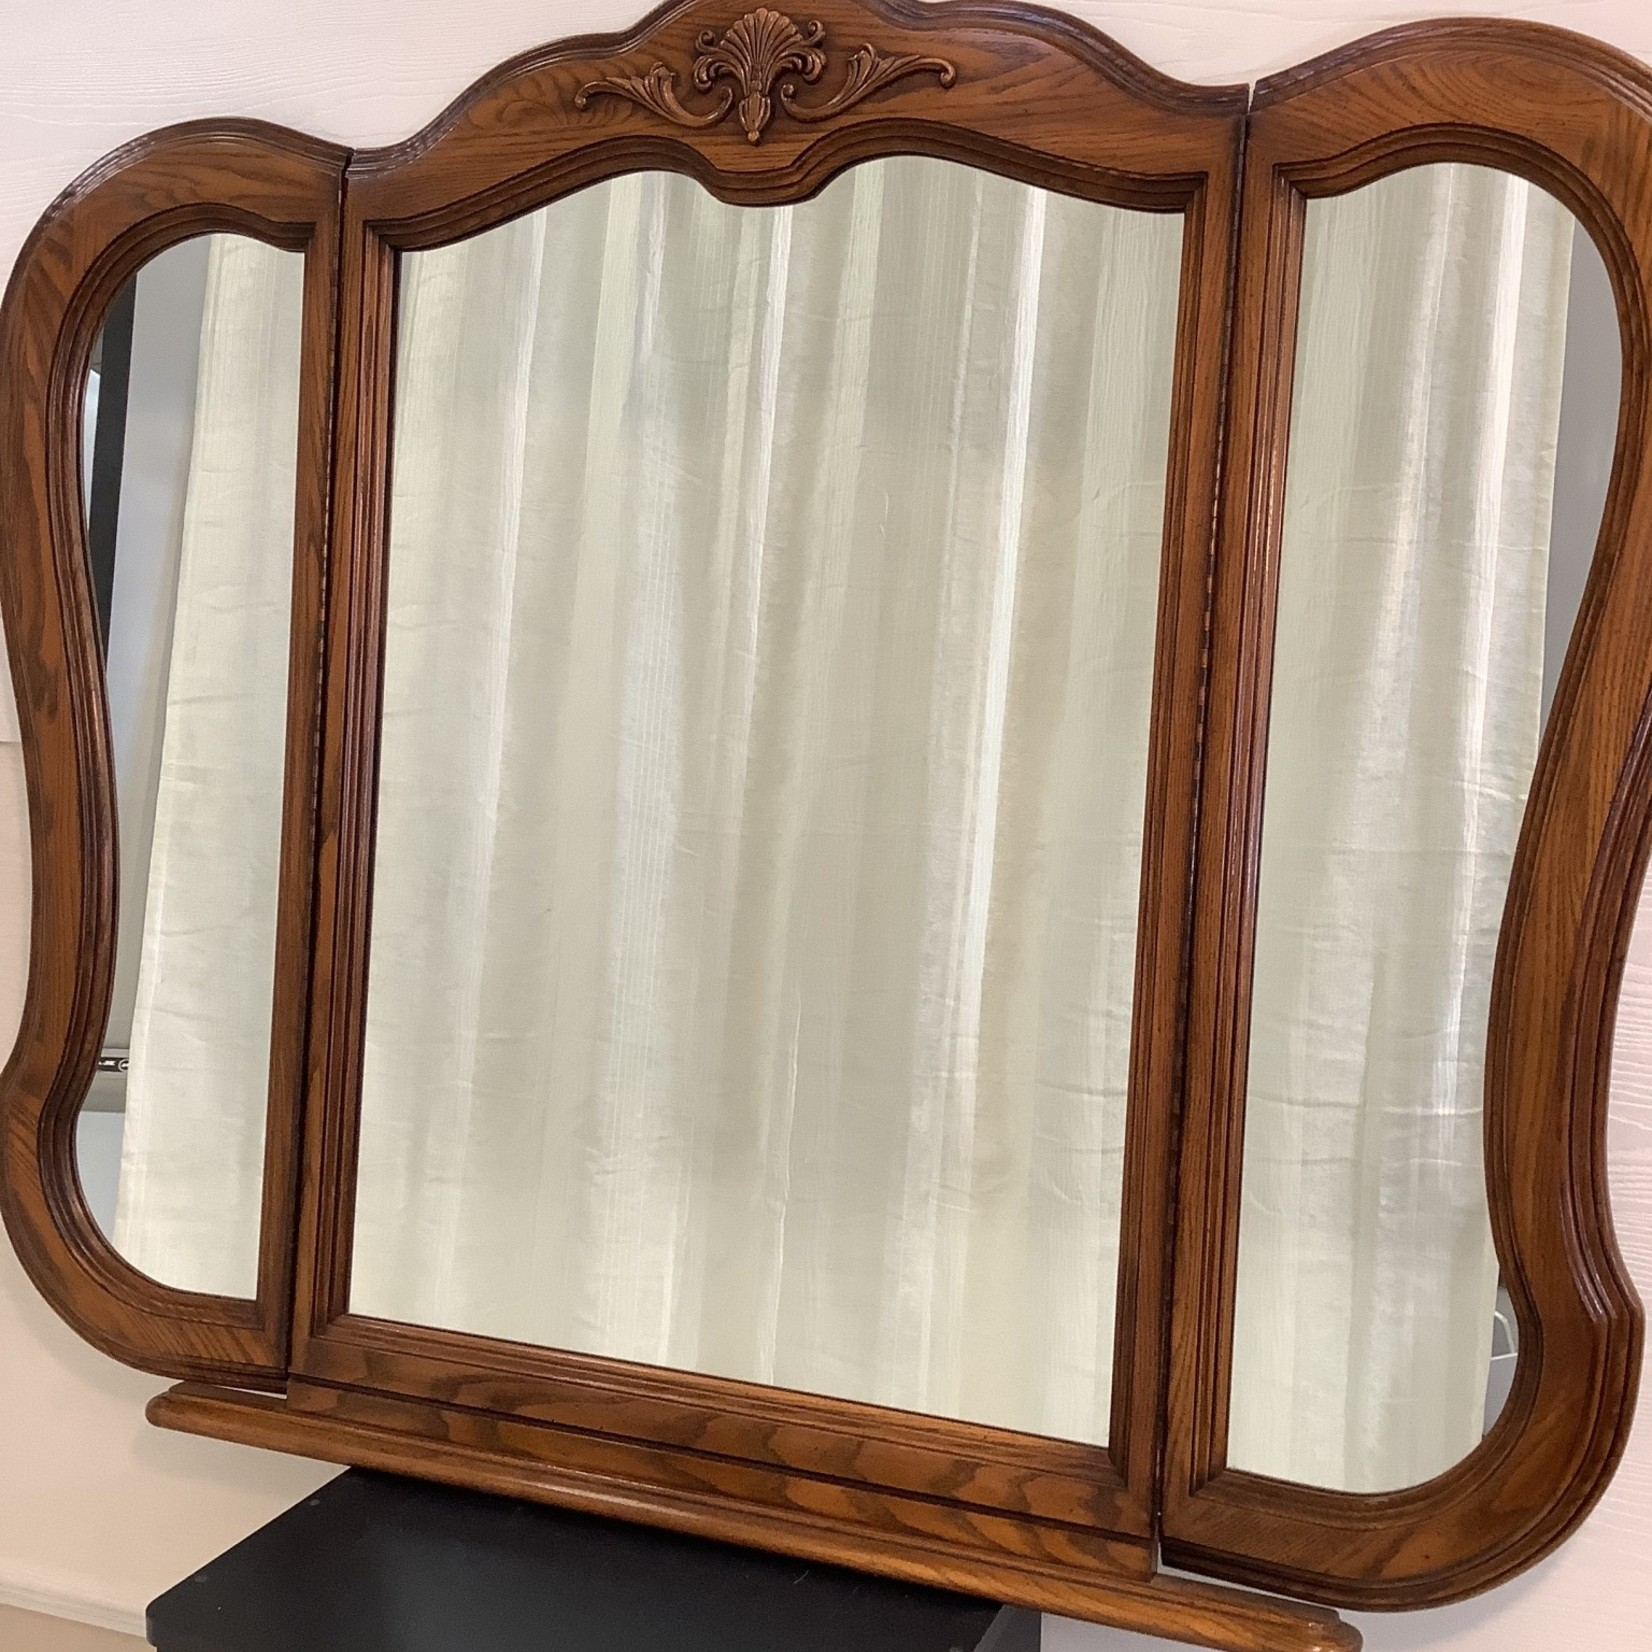 Large Mirror with two foldable side mirrors